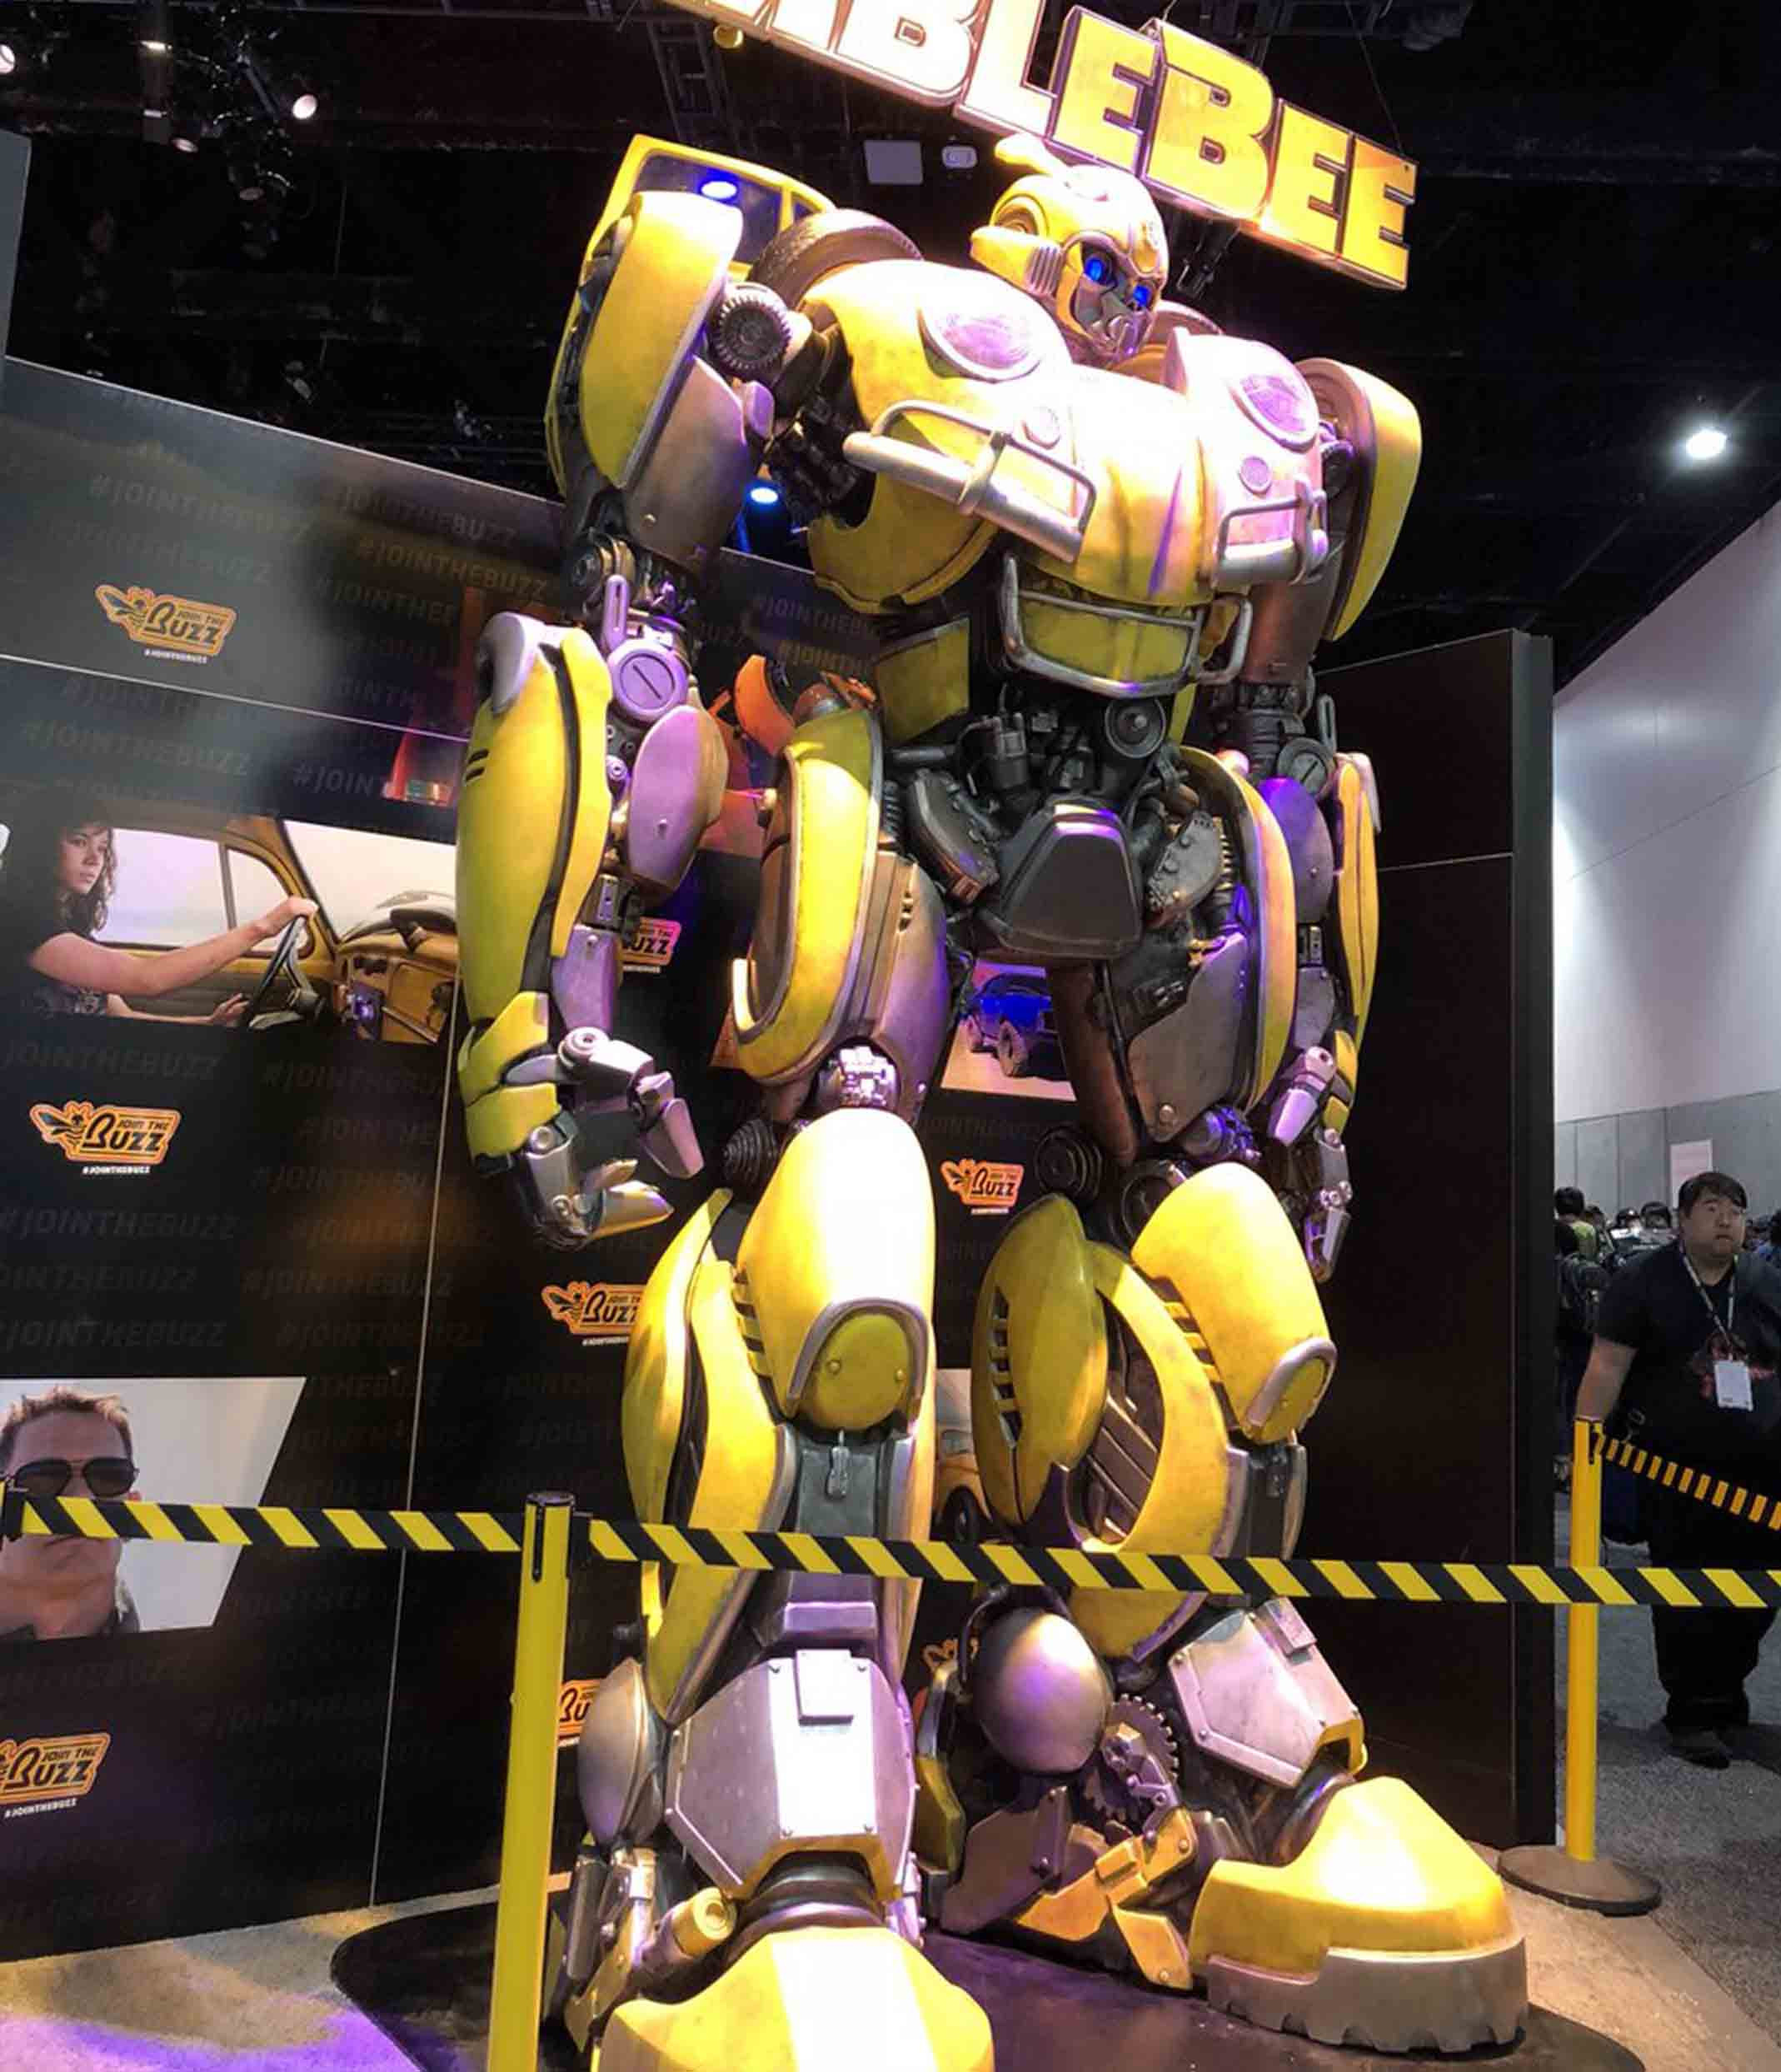 Bumblebee-Paramount Pictures-Designed by Yacine BRINIS-003-3D Printed an painted (pictures taken in San-Diego)